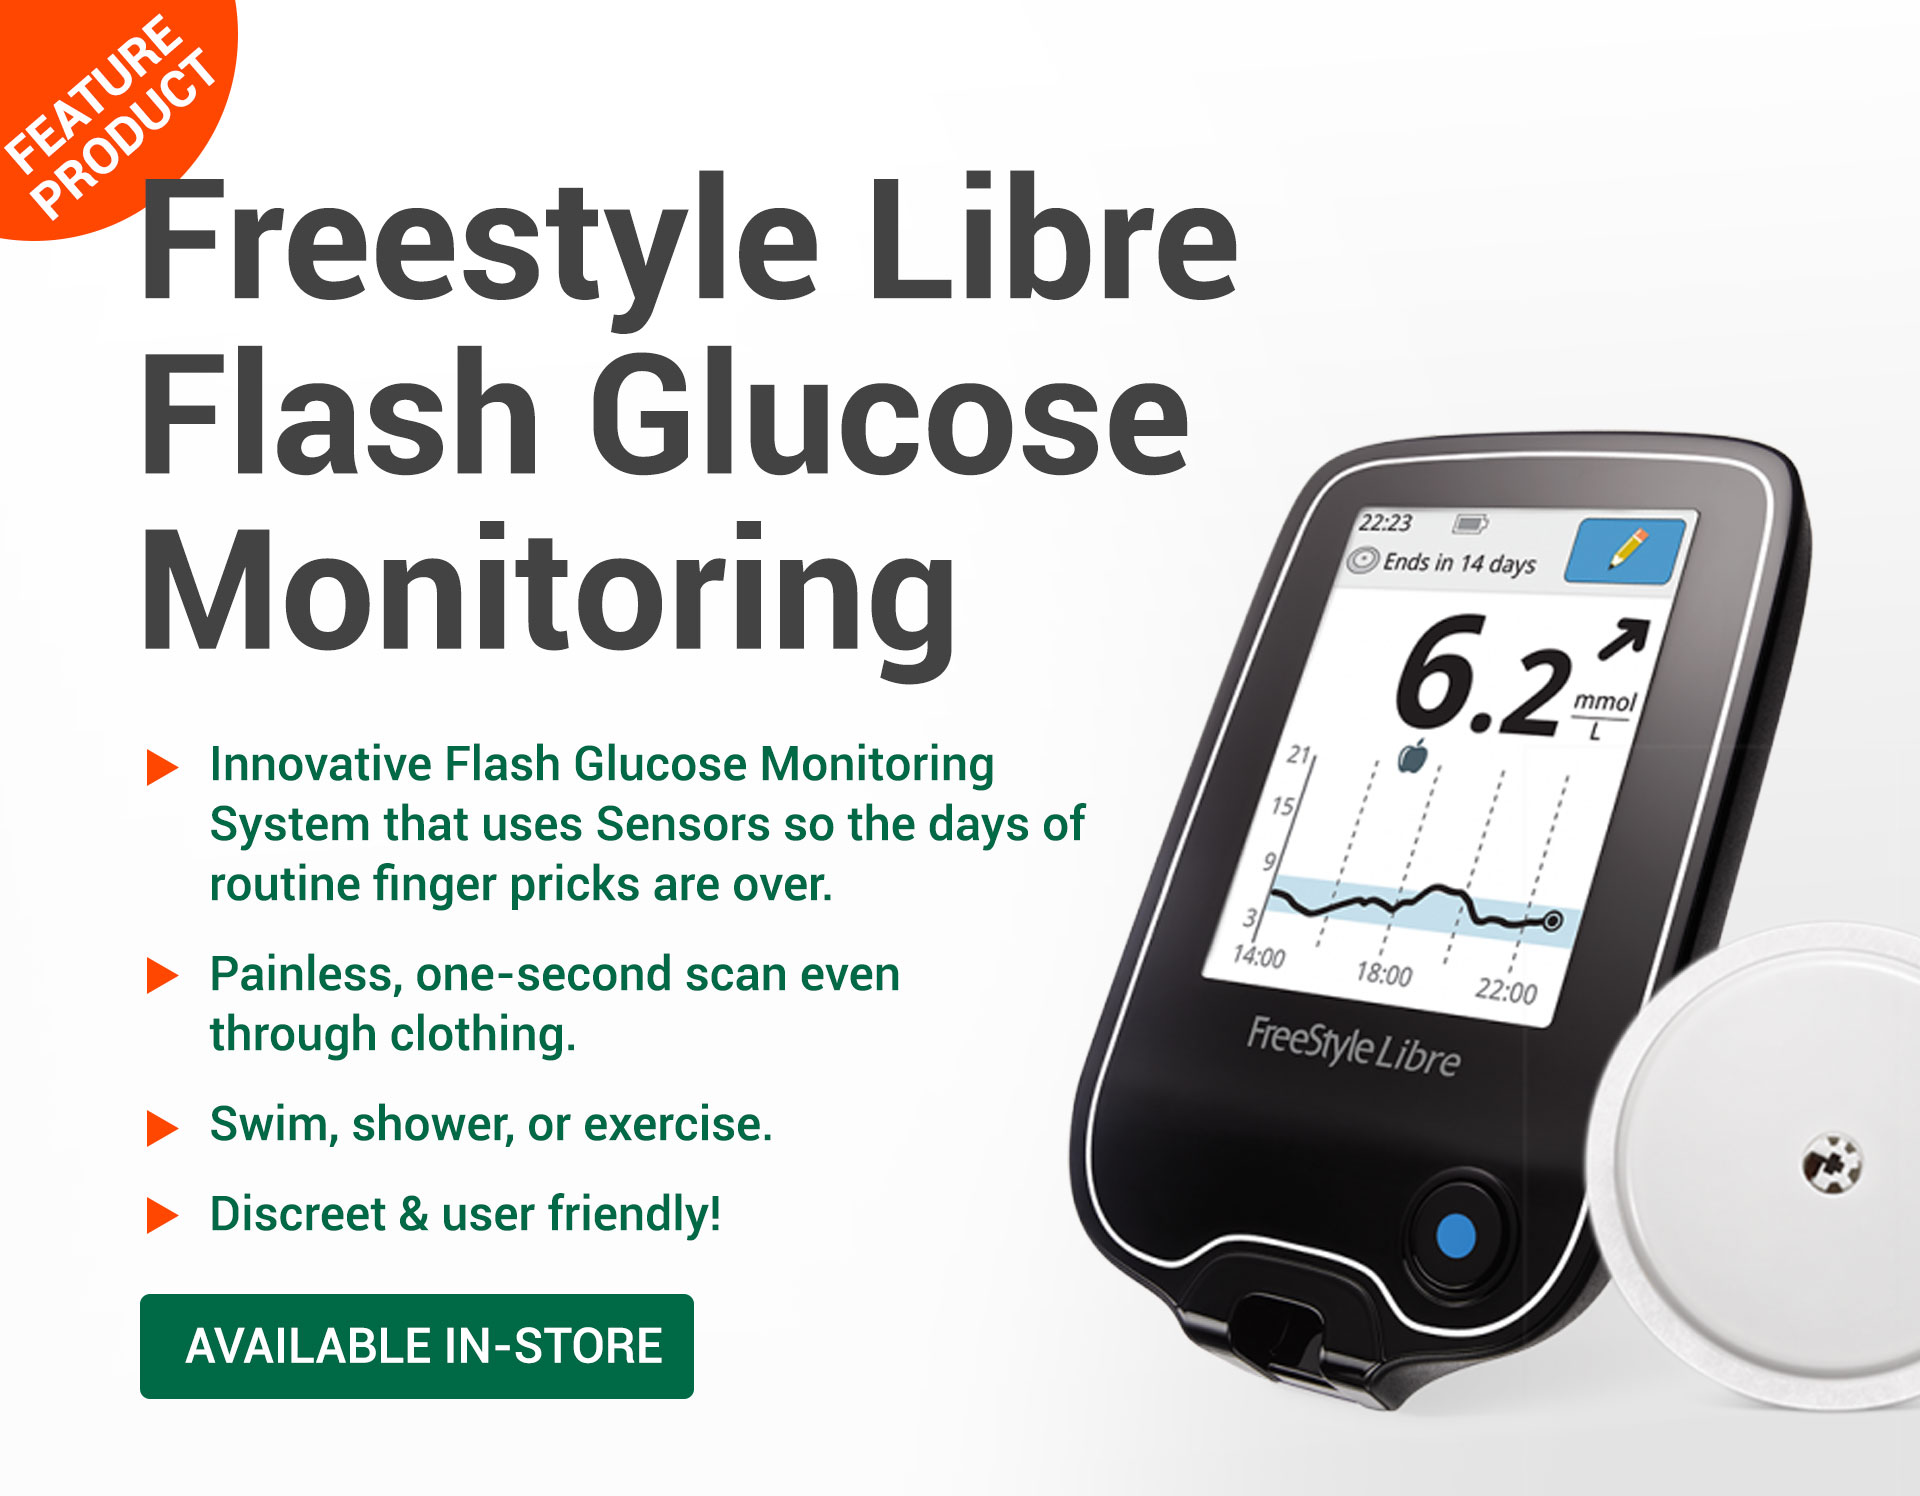 Freestyle Libre Flash Glucose Monitoring